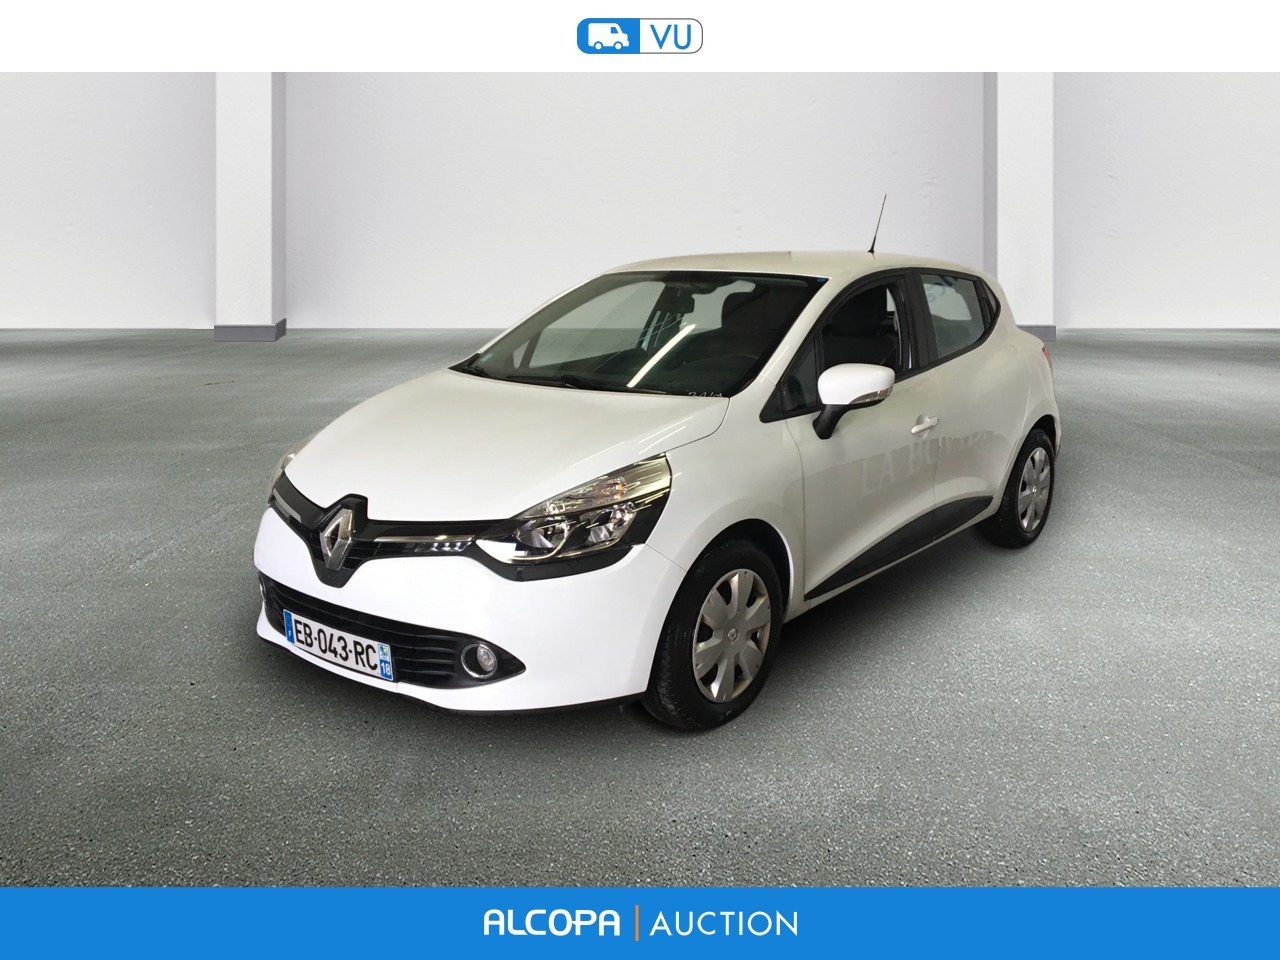 renault clio iv societe clio iv societe dci 90 energy eco2 air medianav alcopa auction. Black Bedroom Furniture Sets. Home Design Ideas